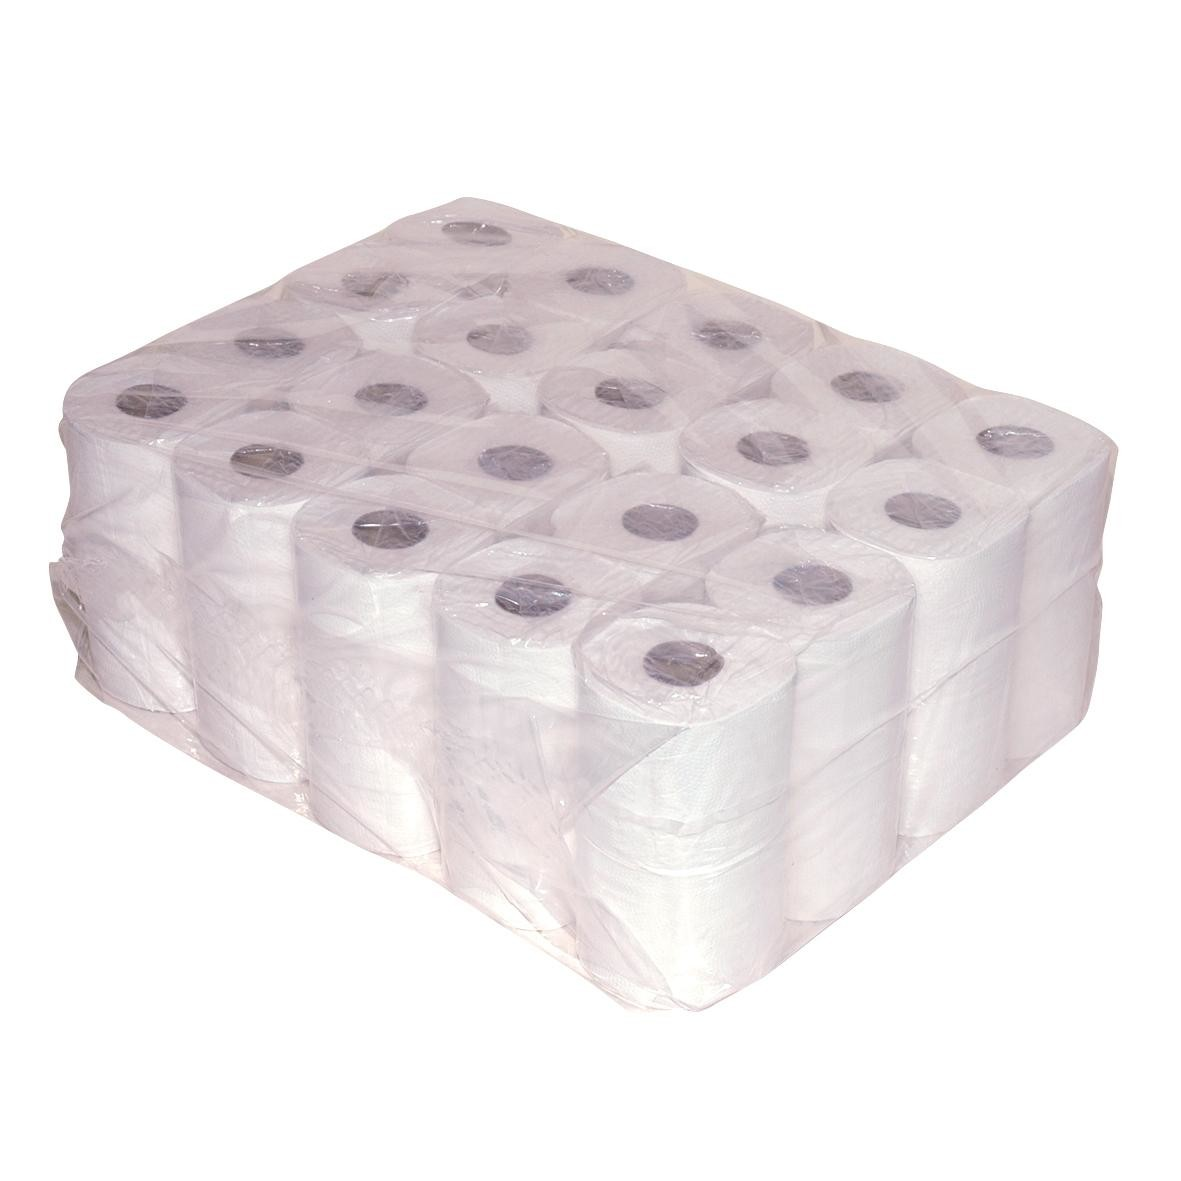 Toilet Paper 2 ply 12x4 rolls Tissue 200 Sheets